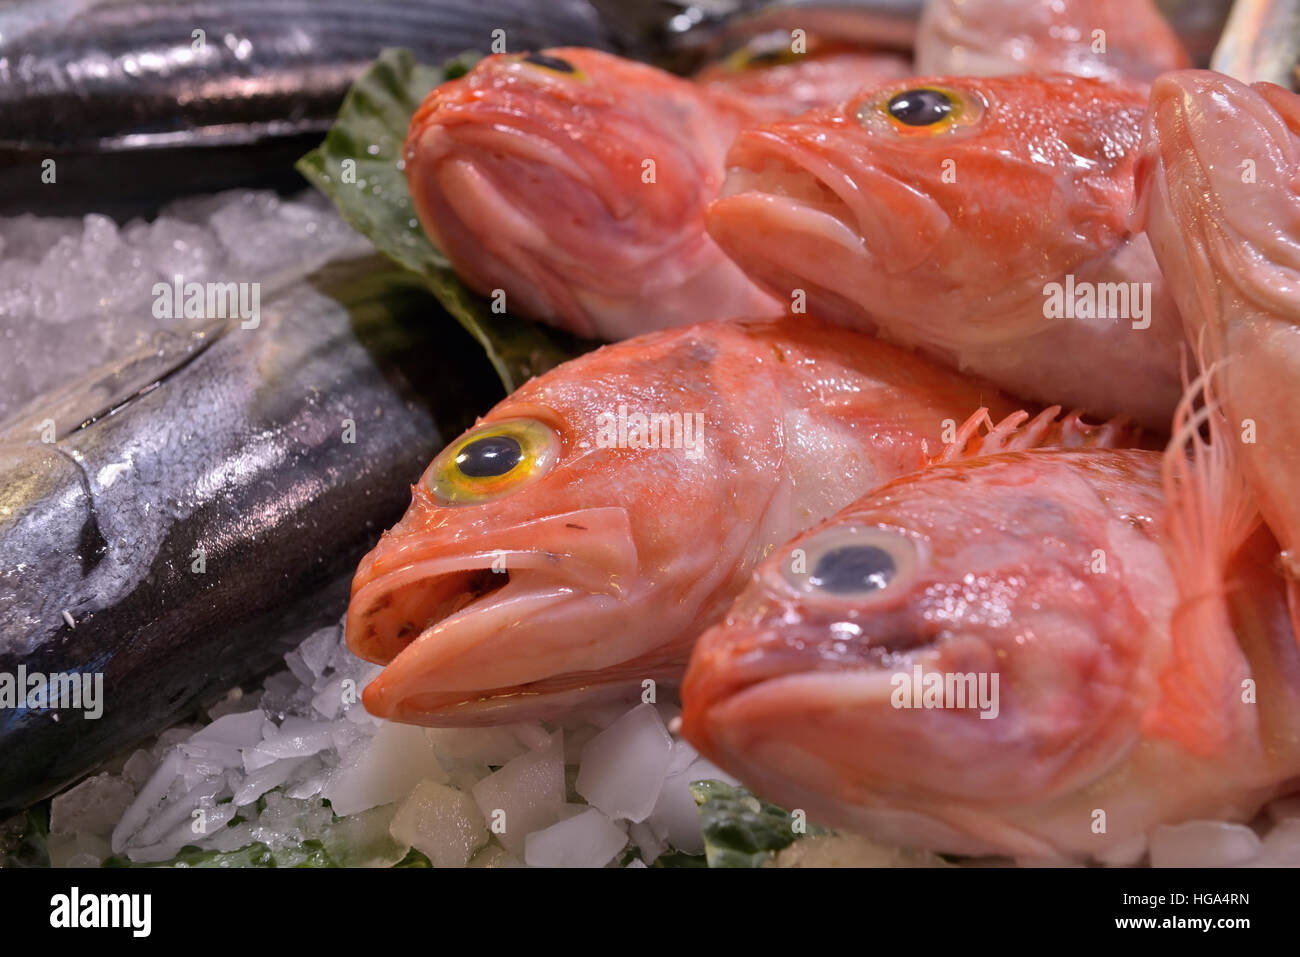 Red Scorpion Fish Stock Photos & Red Scorpion Fish Stock Images - Alamy